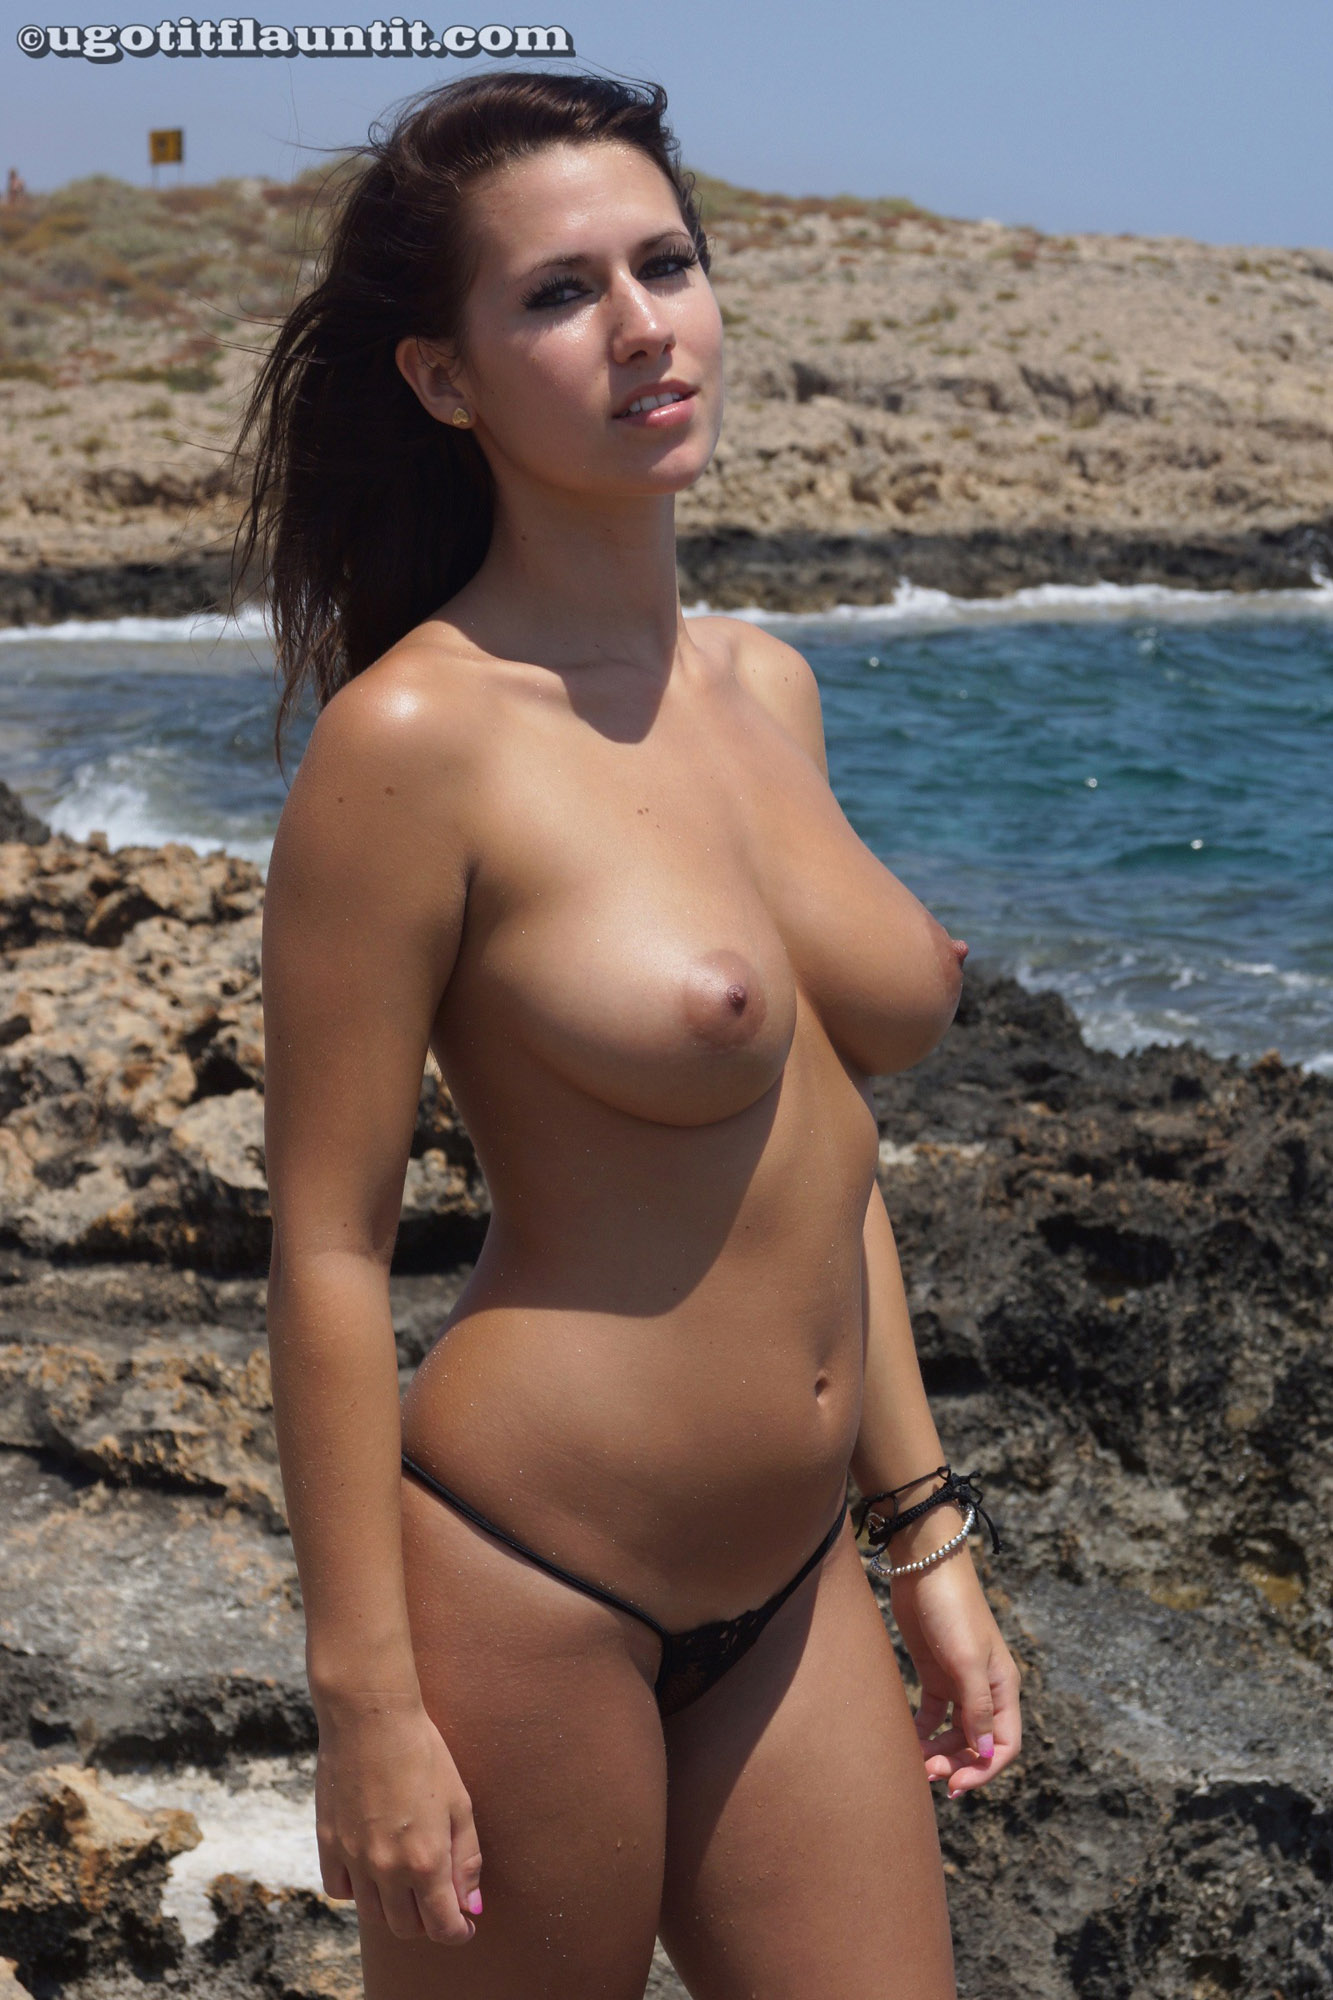 Nude Beach Photos Women